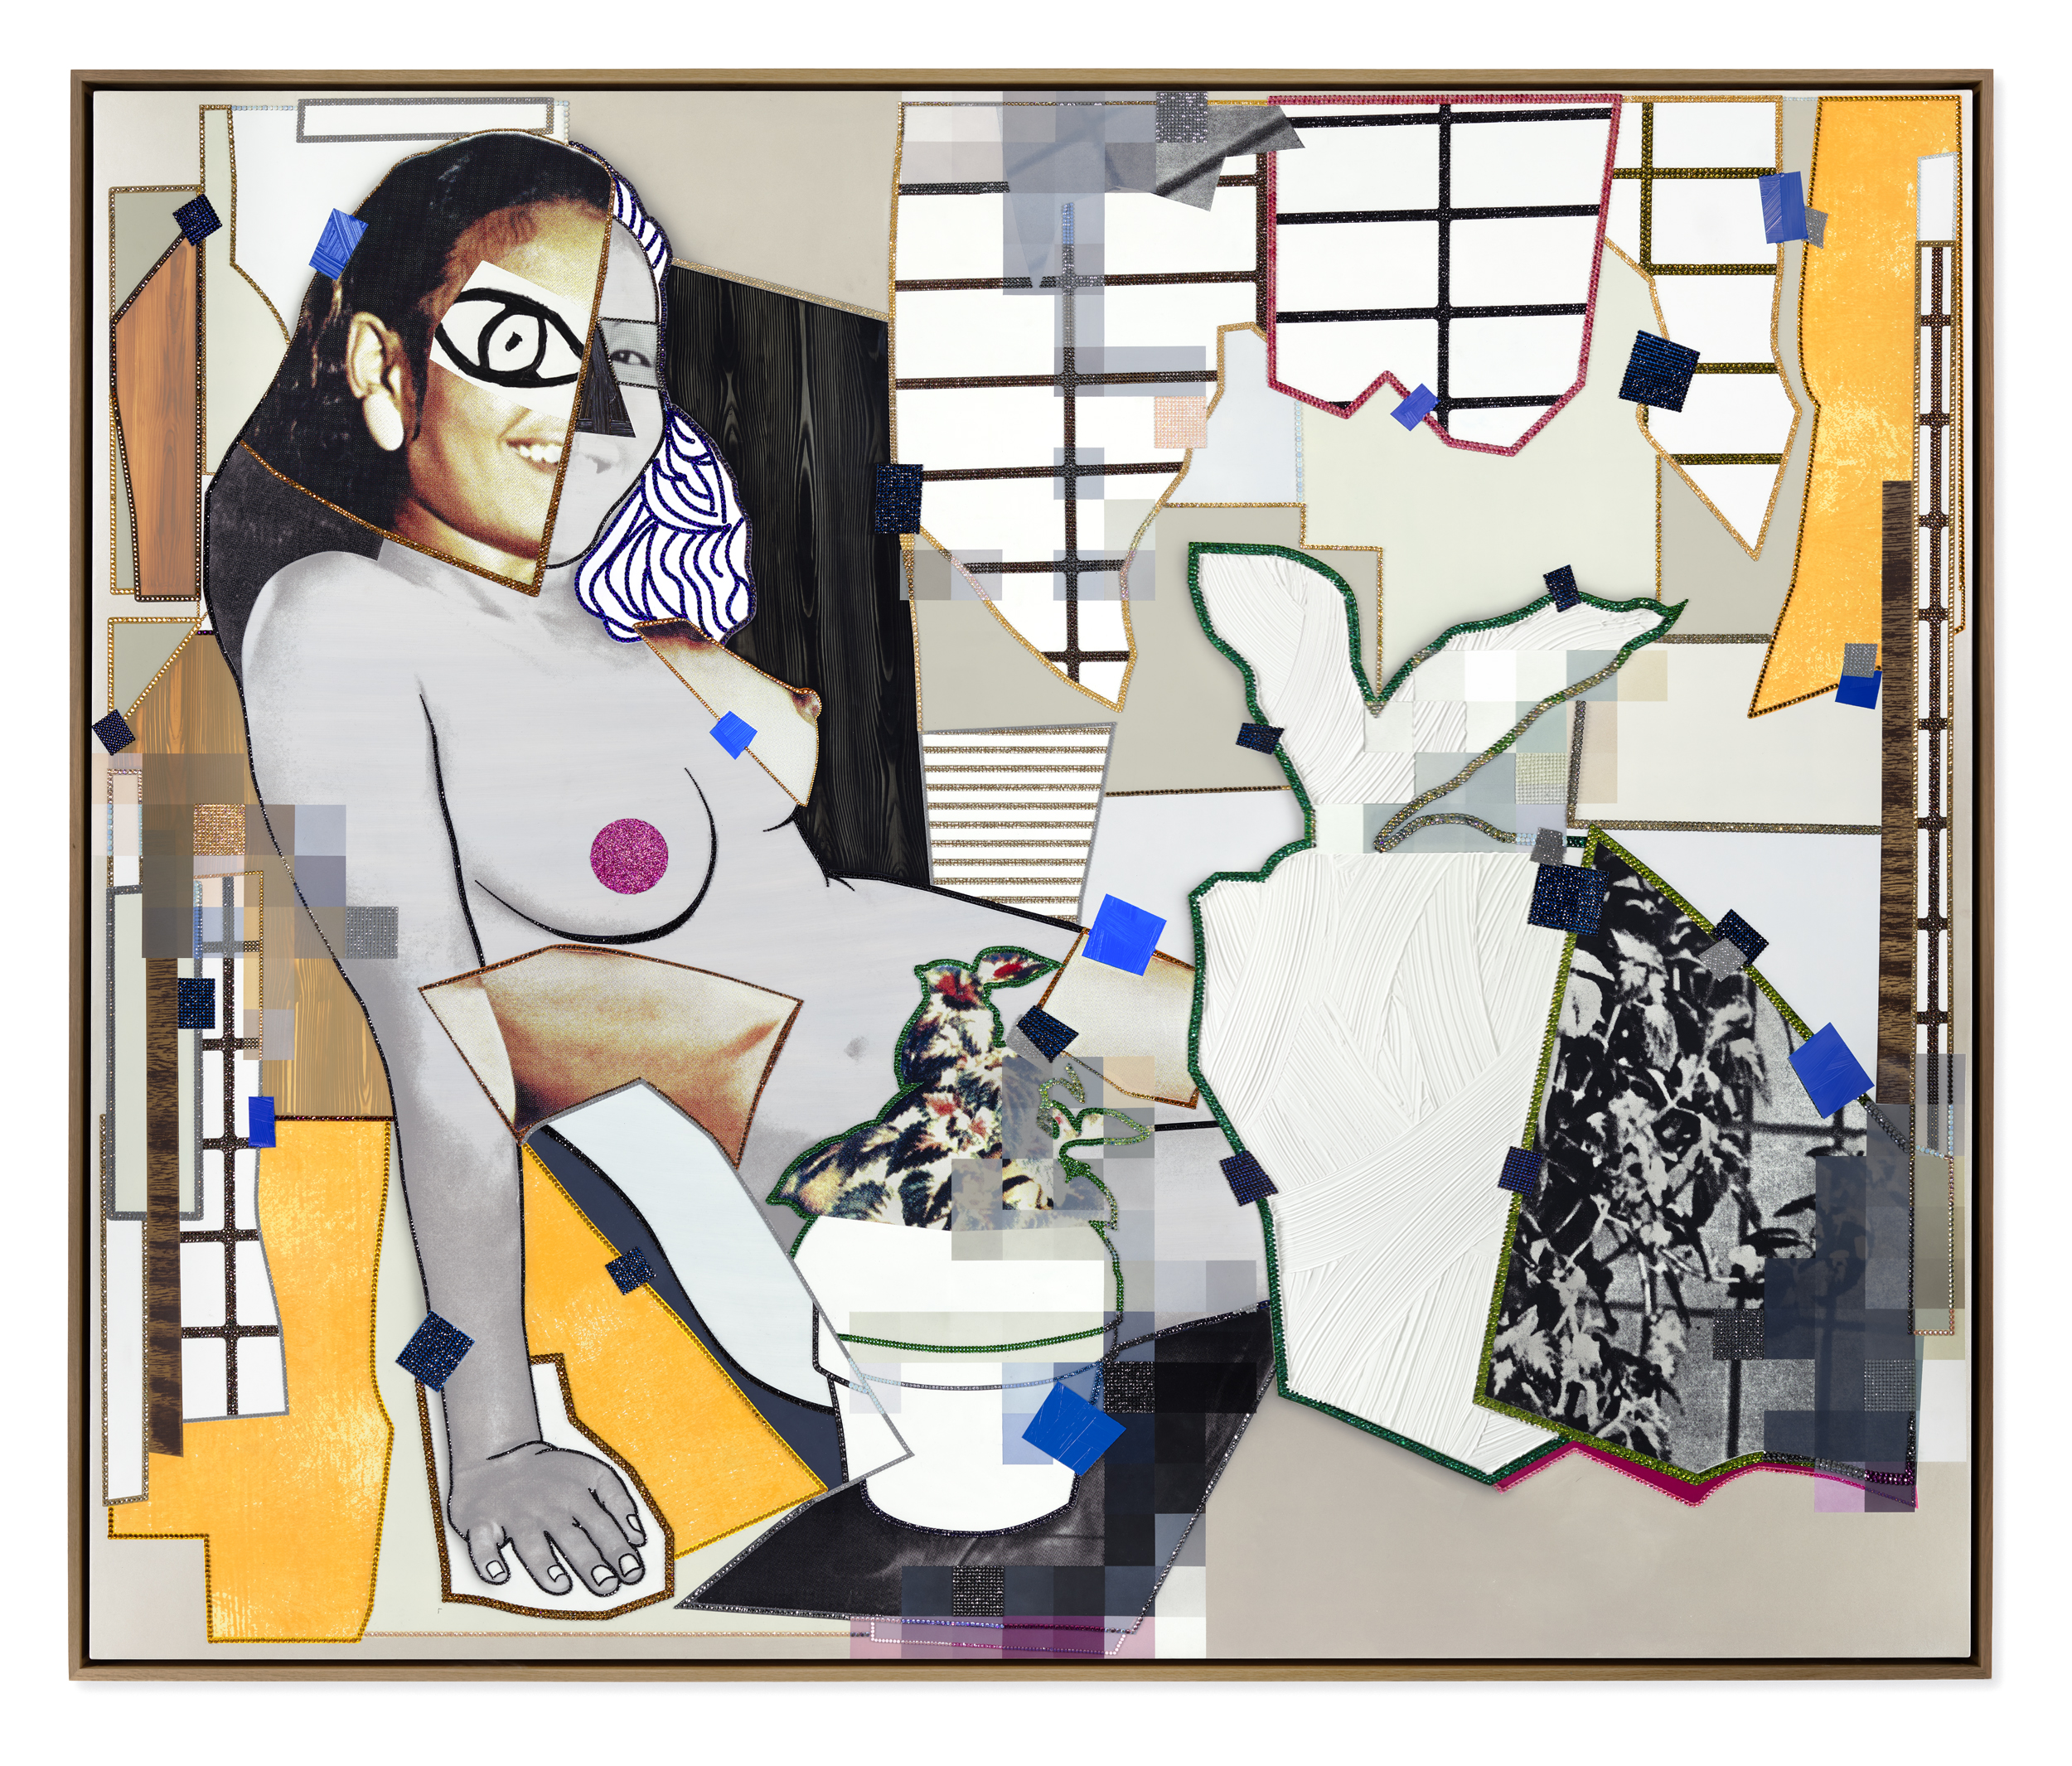 Mickalene Thomas, _February 1976_, 2021. Rhinestones, glitter, charcoal, acrylic, and oil on canvas mounted on wood panel with oak frame 82⅛ x 98⅛ inches (208.6 x 249.2 cm). © Mickalene Thomas / Artists Rights Society (ARS), New York.